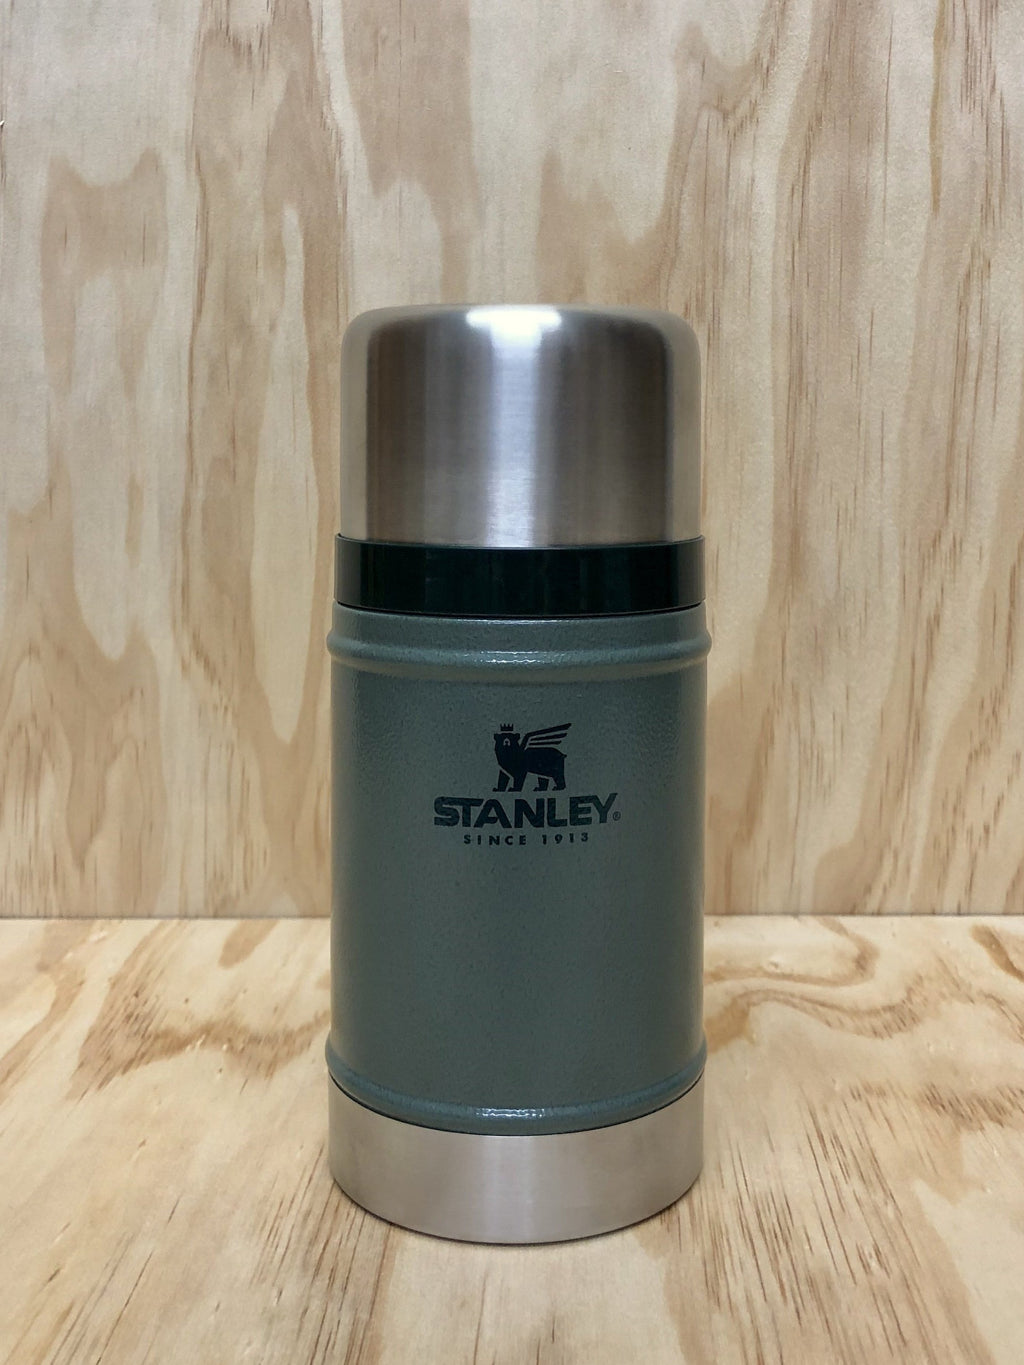 Stanley Stainless Steel Food Jar